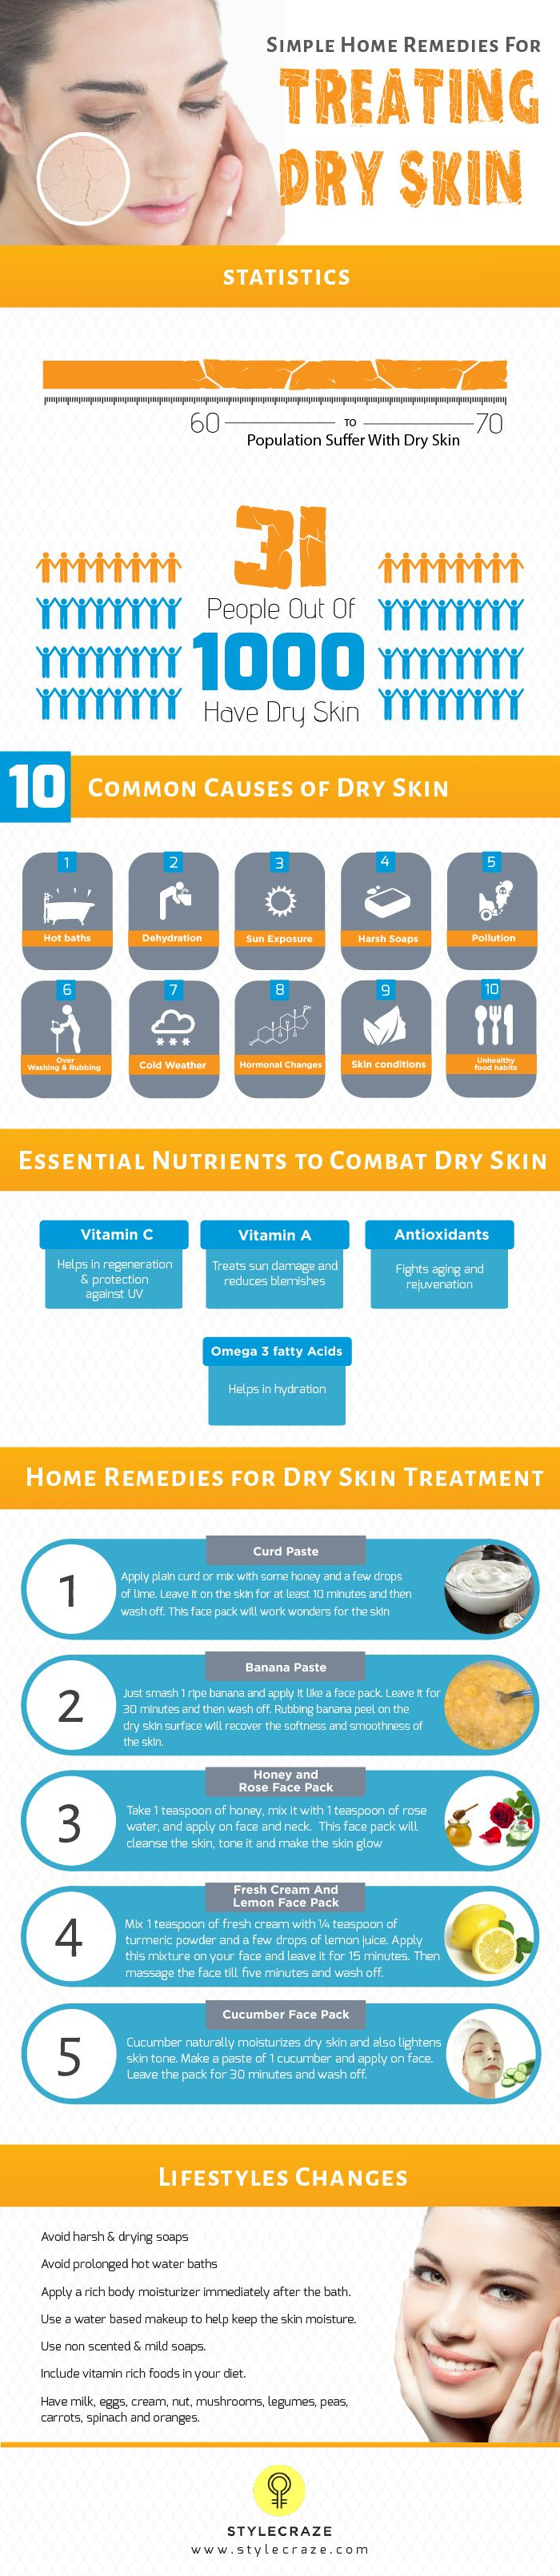 Home Remedies for dry skin treatments depend entirely on the causes of the condition. But the one common aim to to restore the moisture content of the skin. Here are some home remedies for you to try.